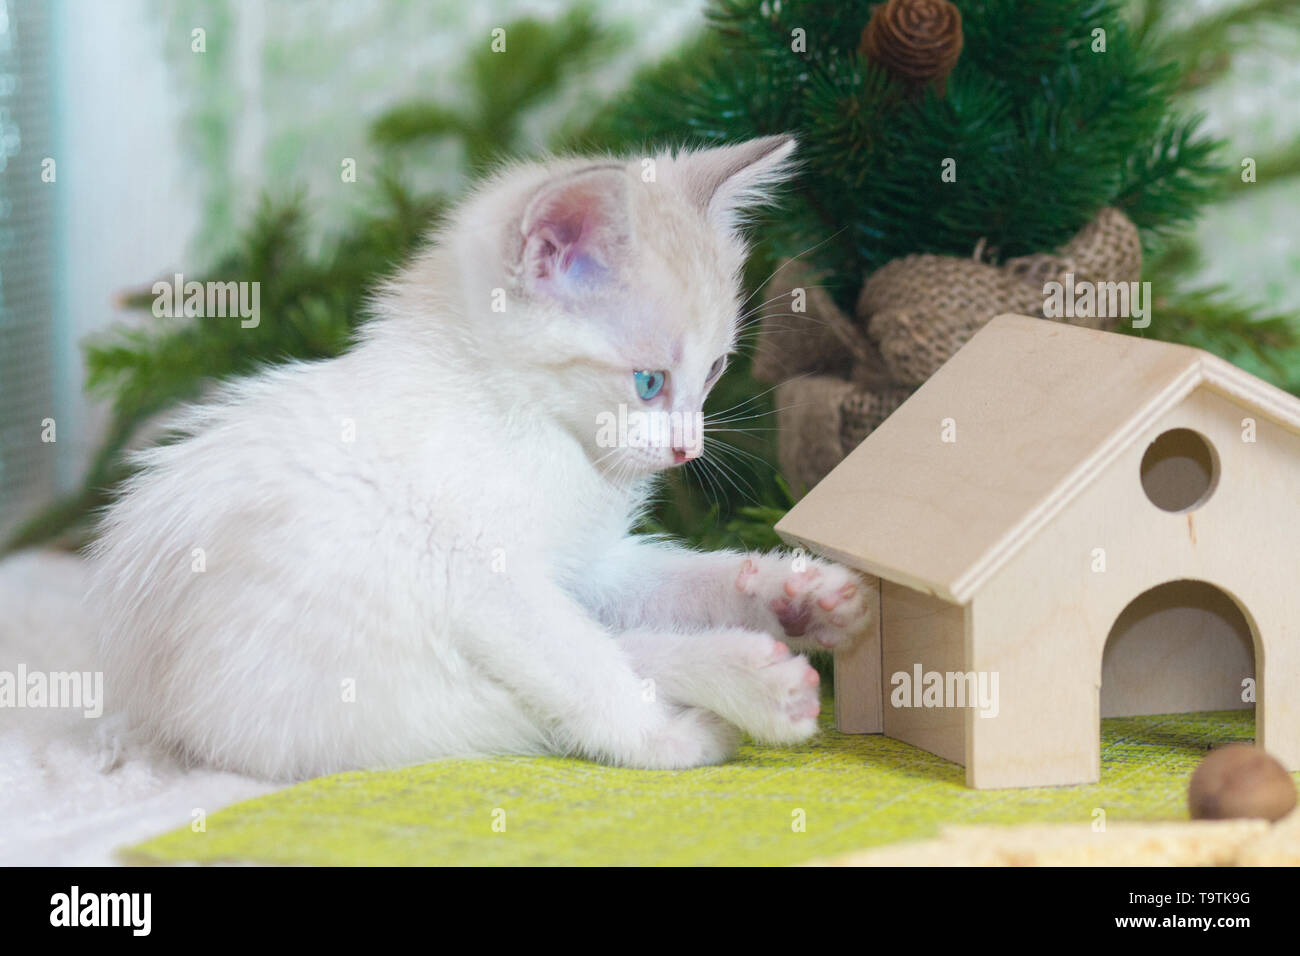 Little kitten sitting on the background of the Christmas tree. White cat sitting next to the house. Furry predator looks at the toy. - Stock Image